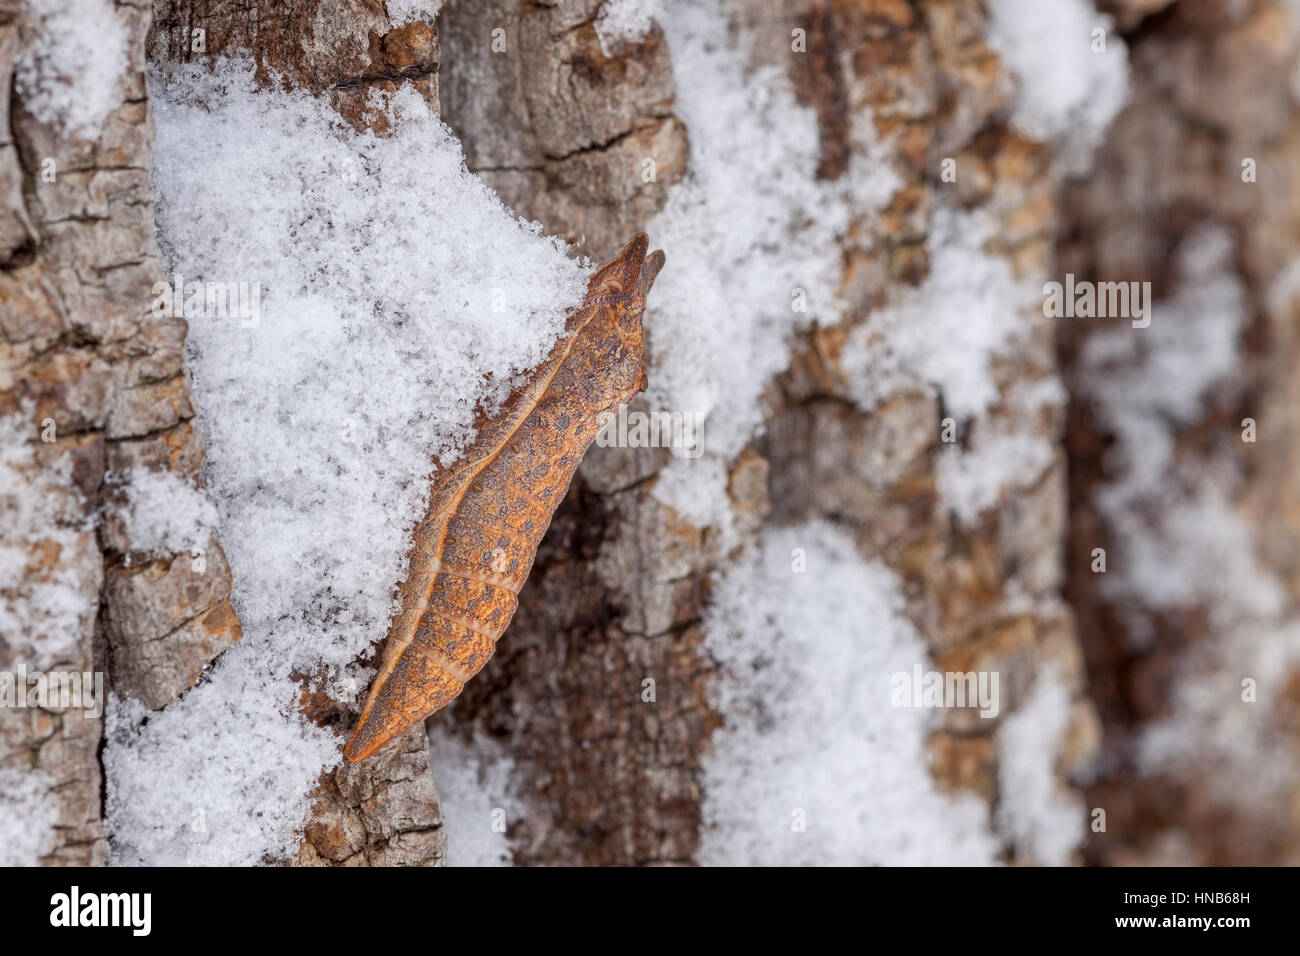 Spicebush Swallowtail (Papilio troilus) chrysalis on Black Locust bark after snowfall. This species overwinters - Stock Image